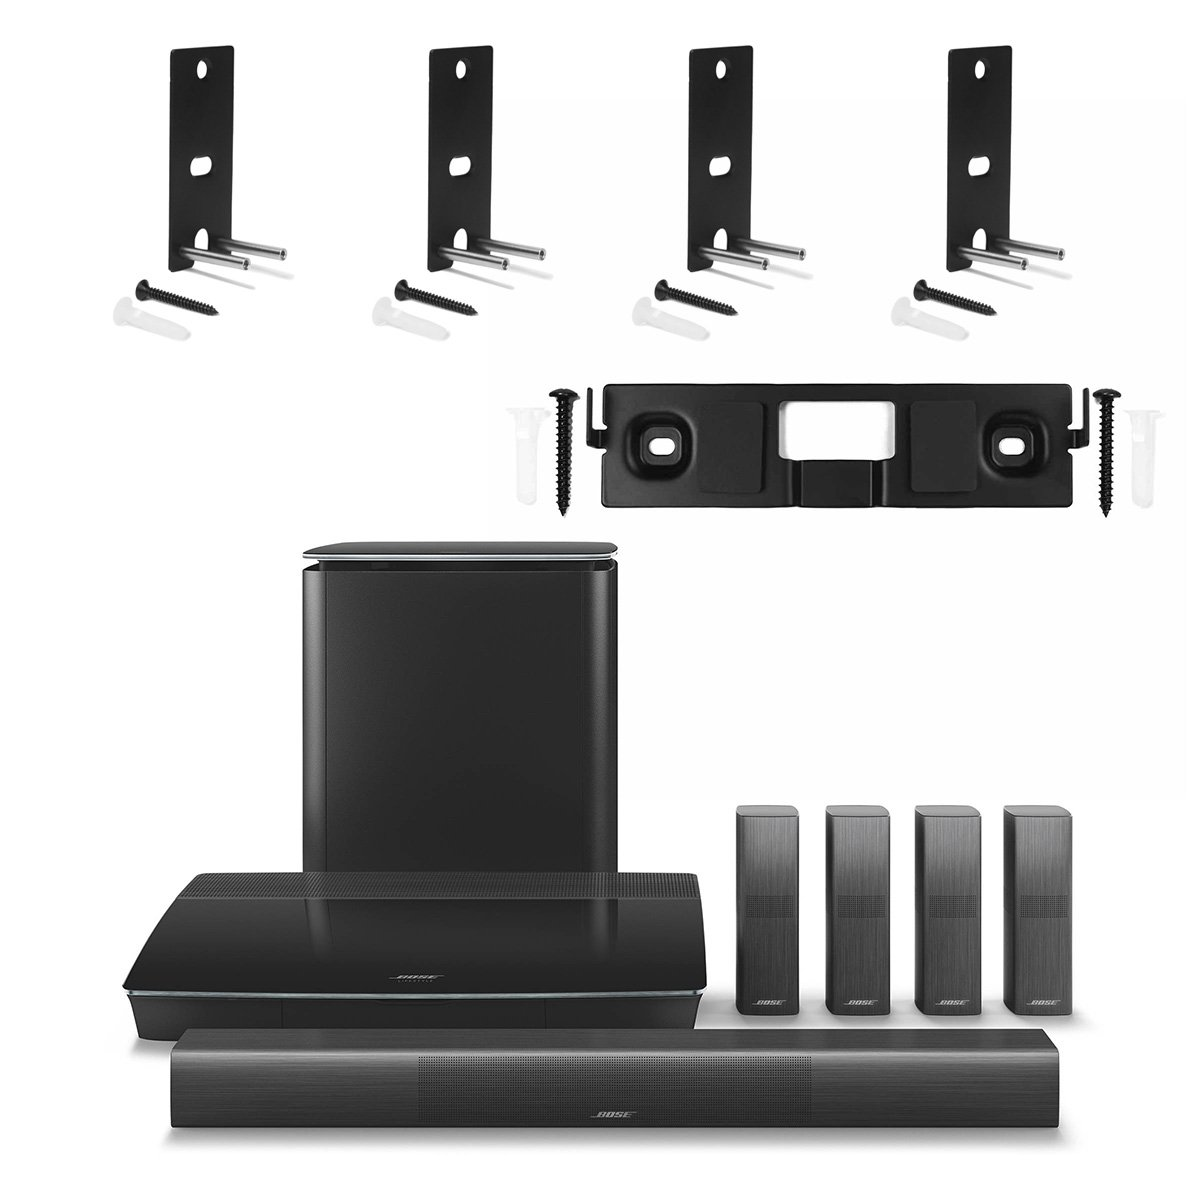 Bose Lifestyle 650 Home Entertainment System with Wall Brackets (1 OmniJewel Center Channel Bracket & 4 OmniJewel Wall Brackets) - Black by Bose